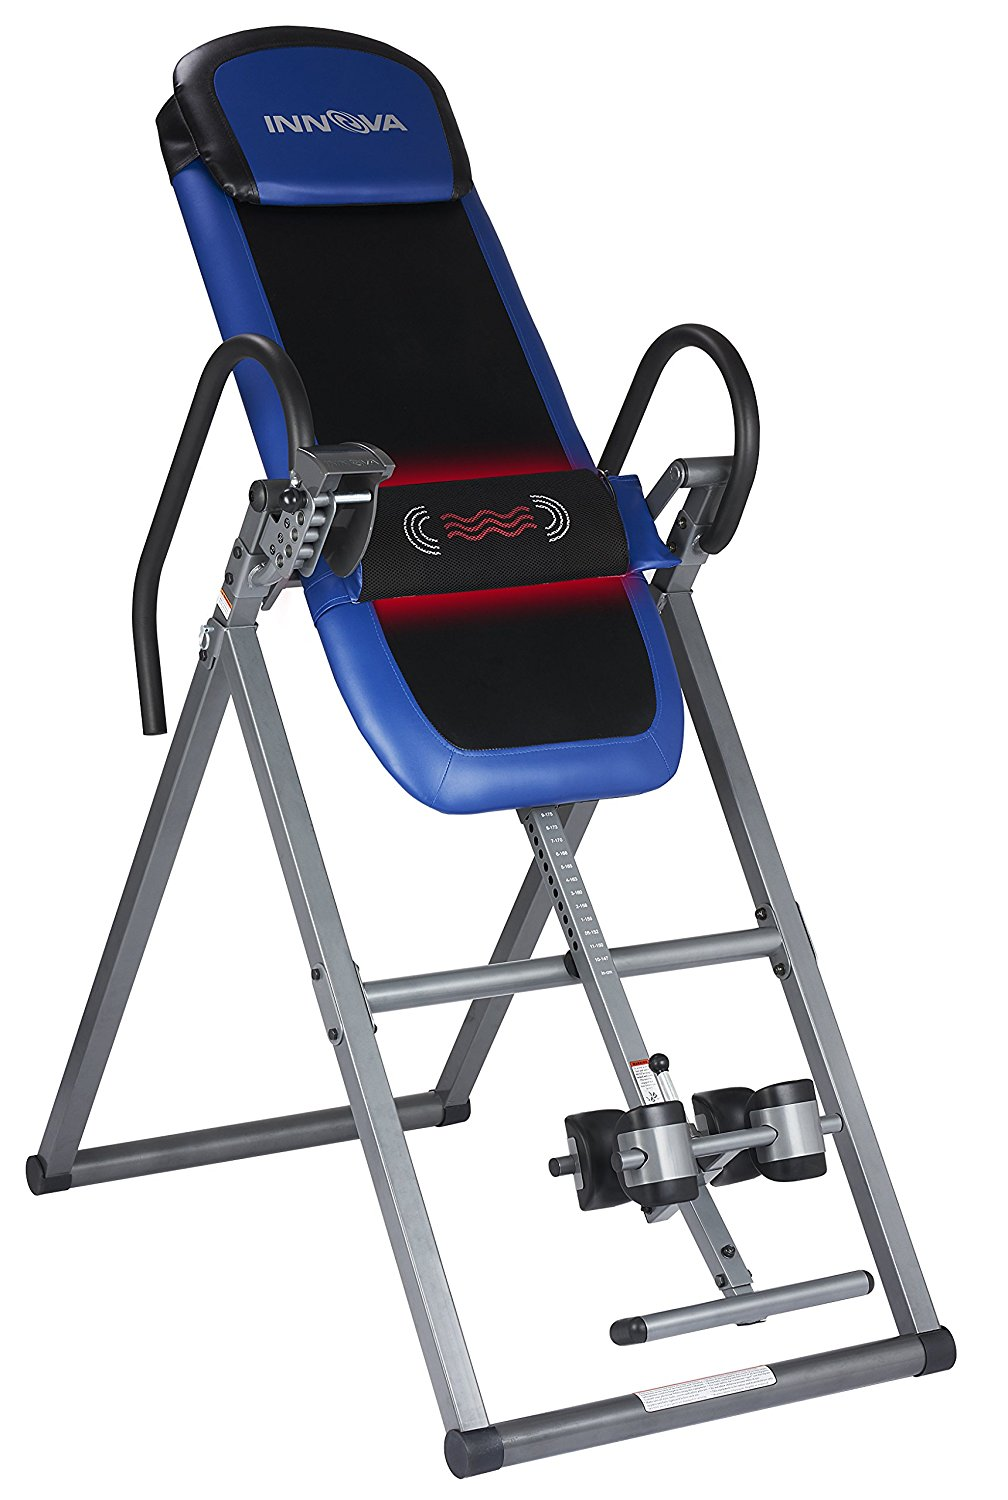 Innova ITM4800 Inversion Therapy Table